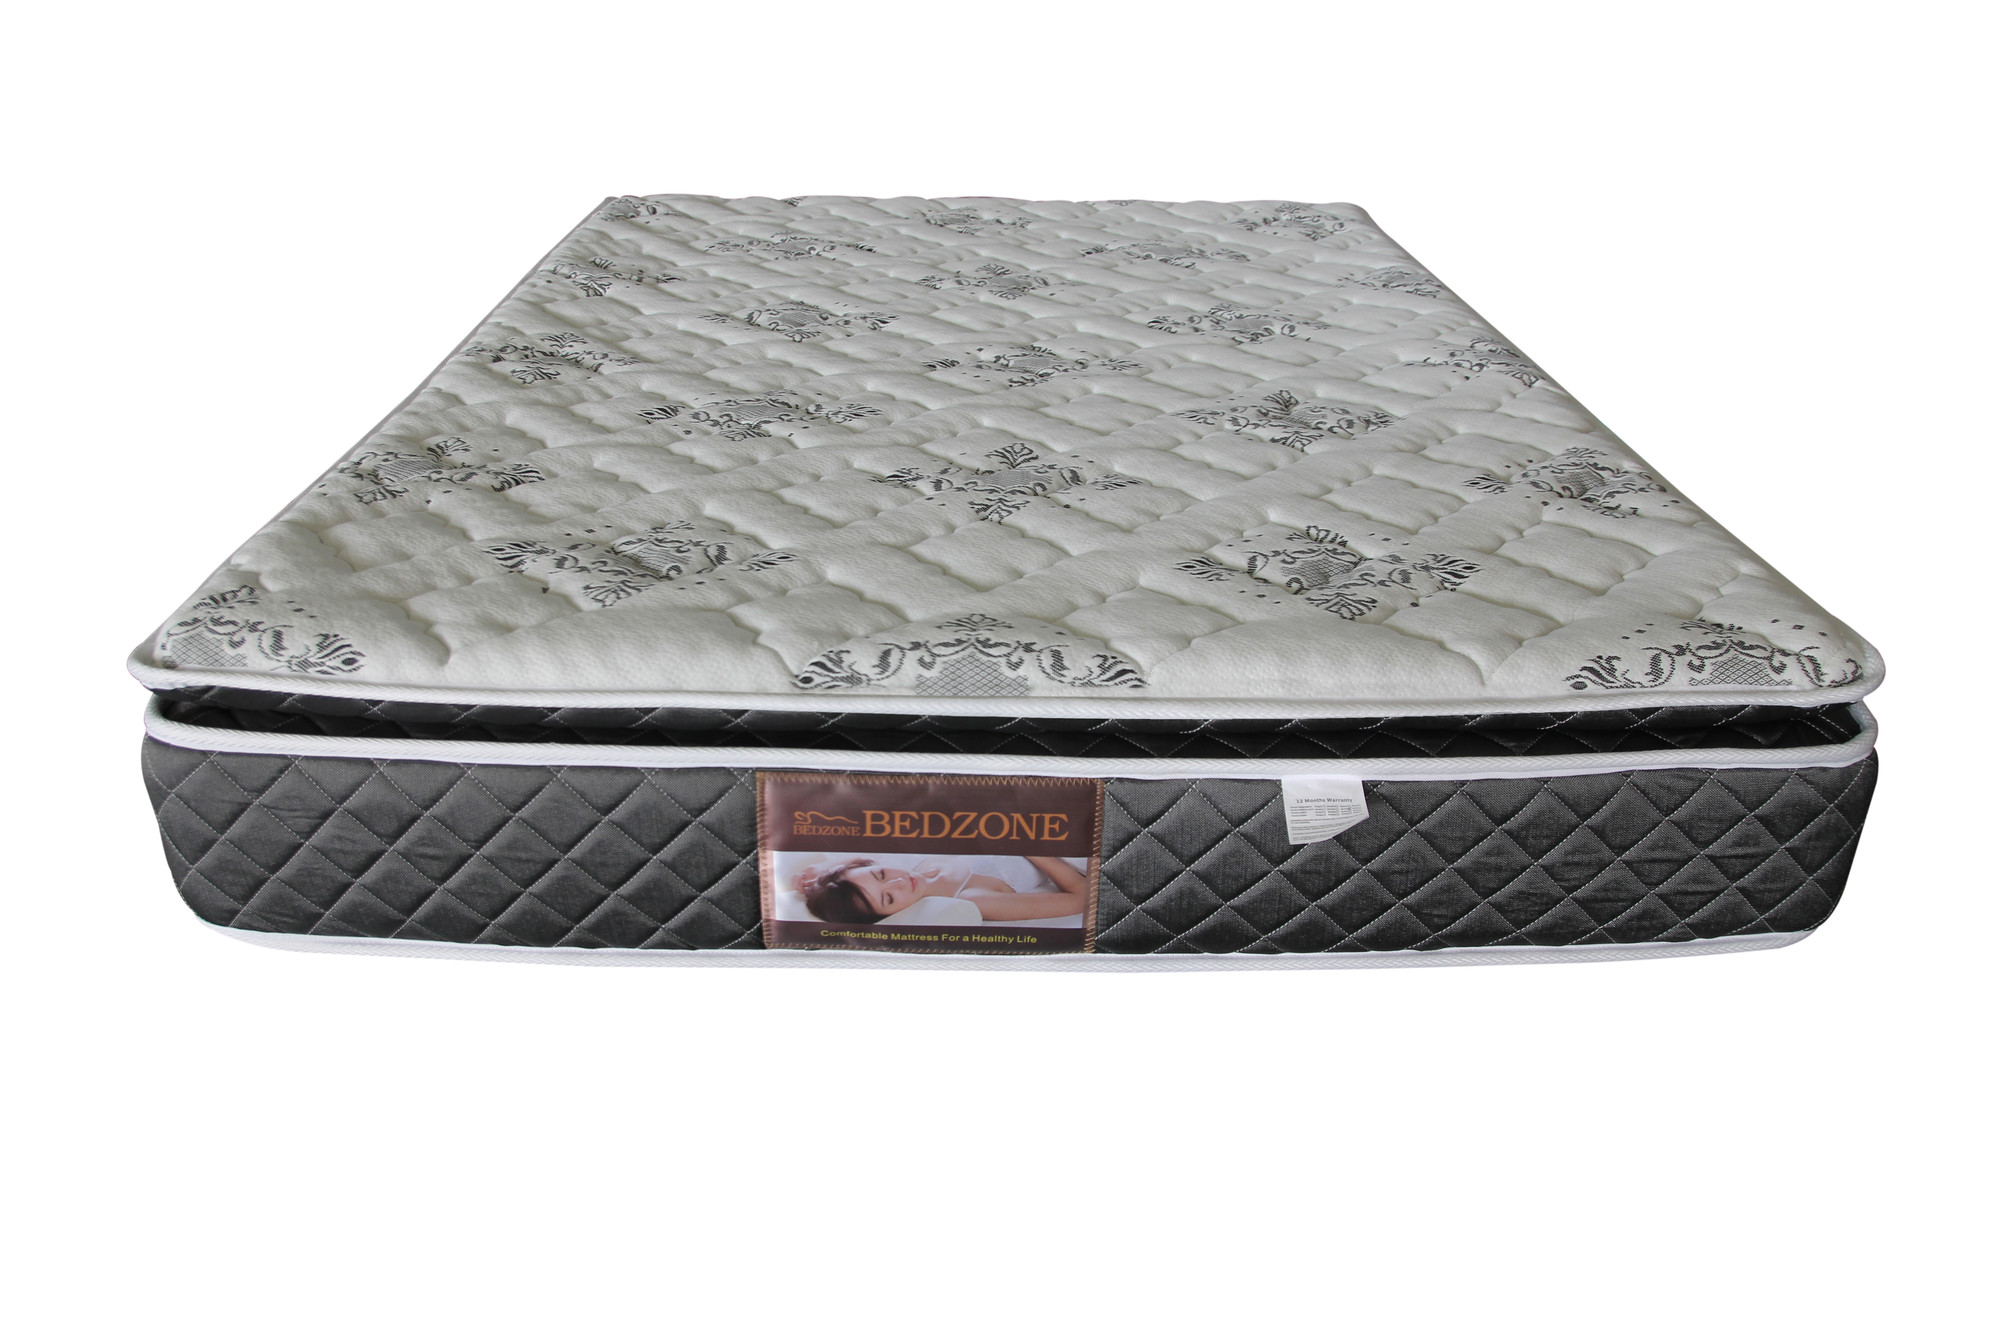 fiber main mattress instant innovations memory product topper foam top and sleepinnovations pillow next ipt sleep